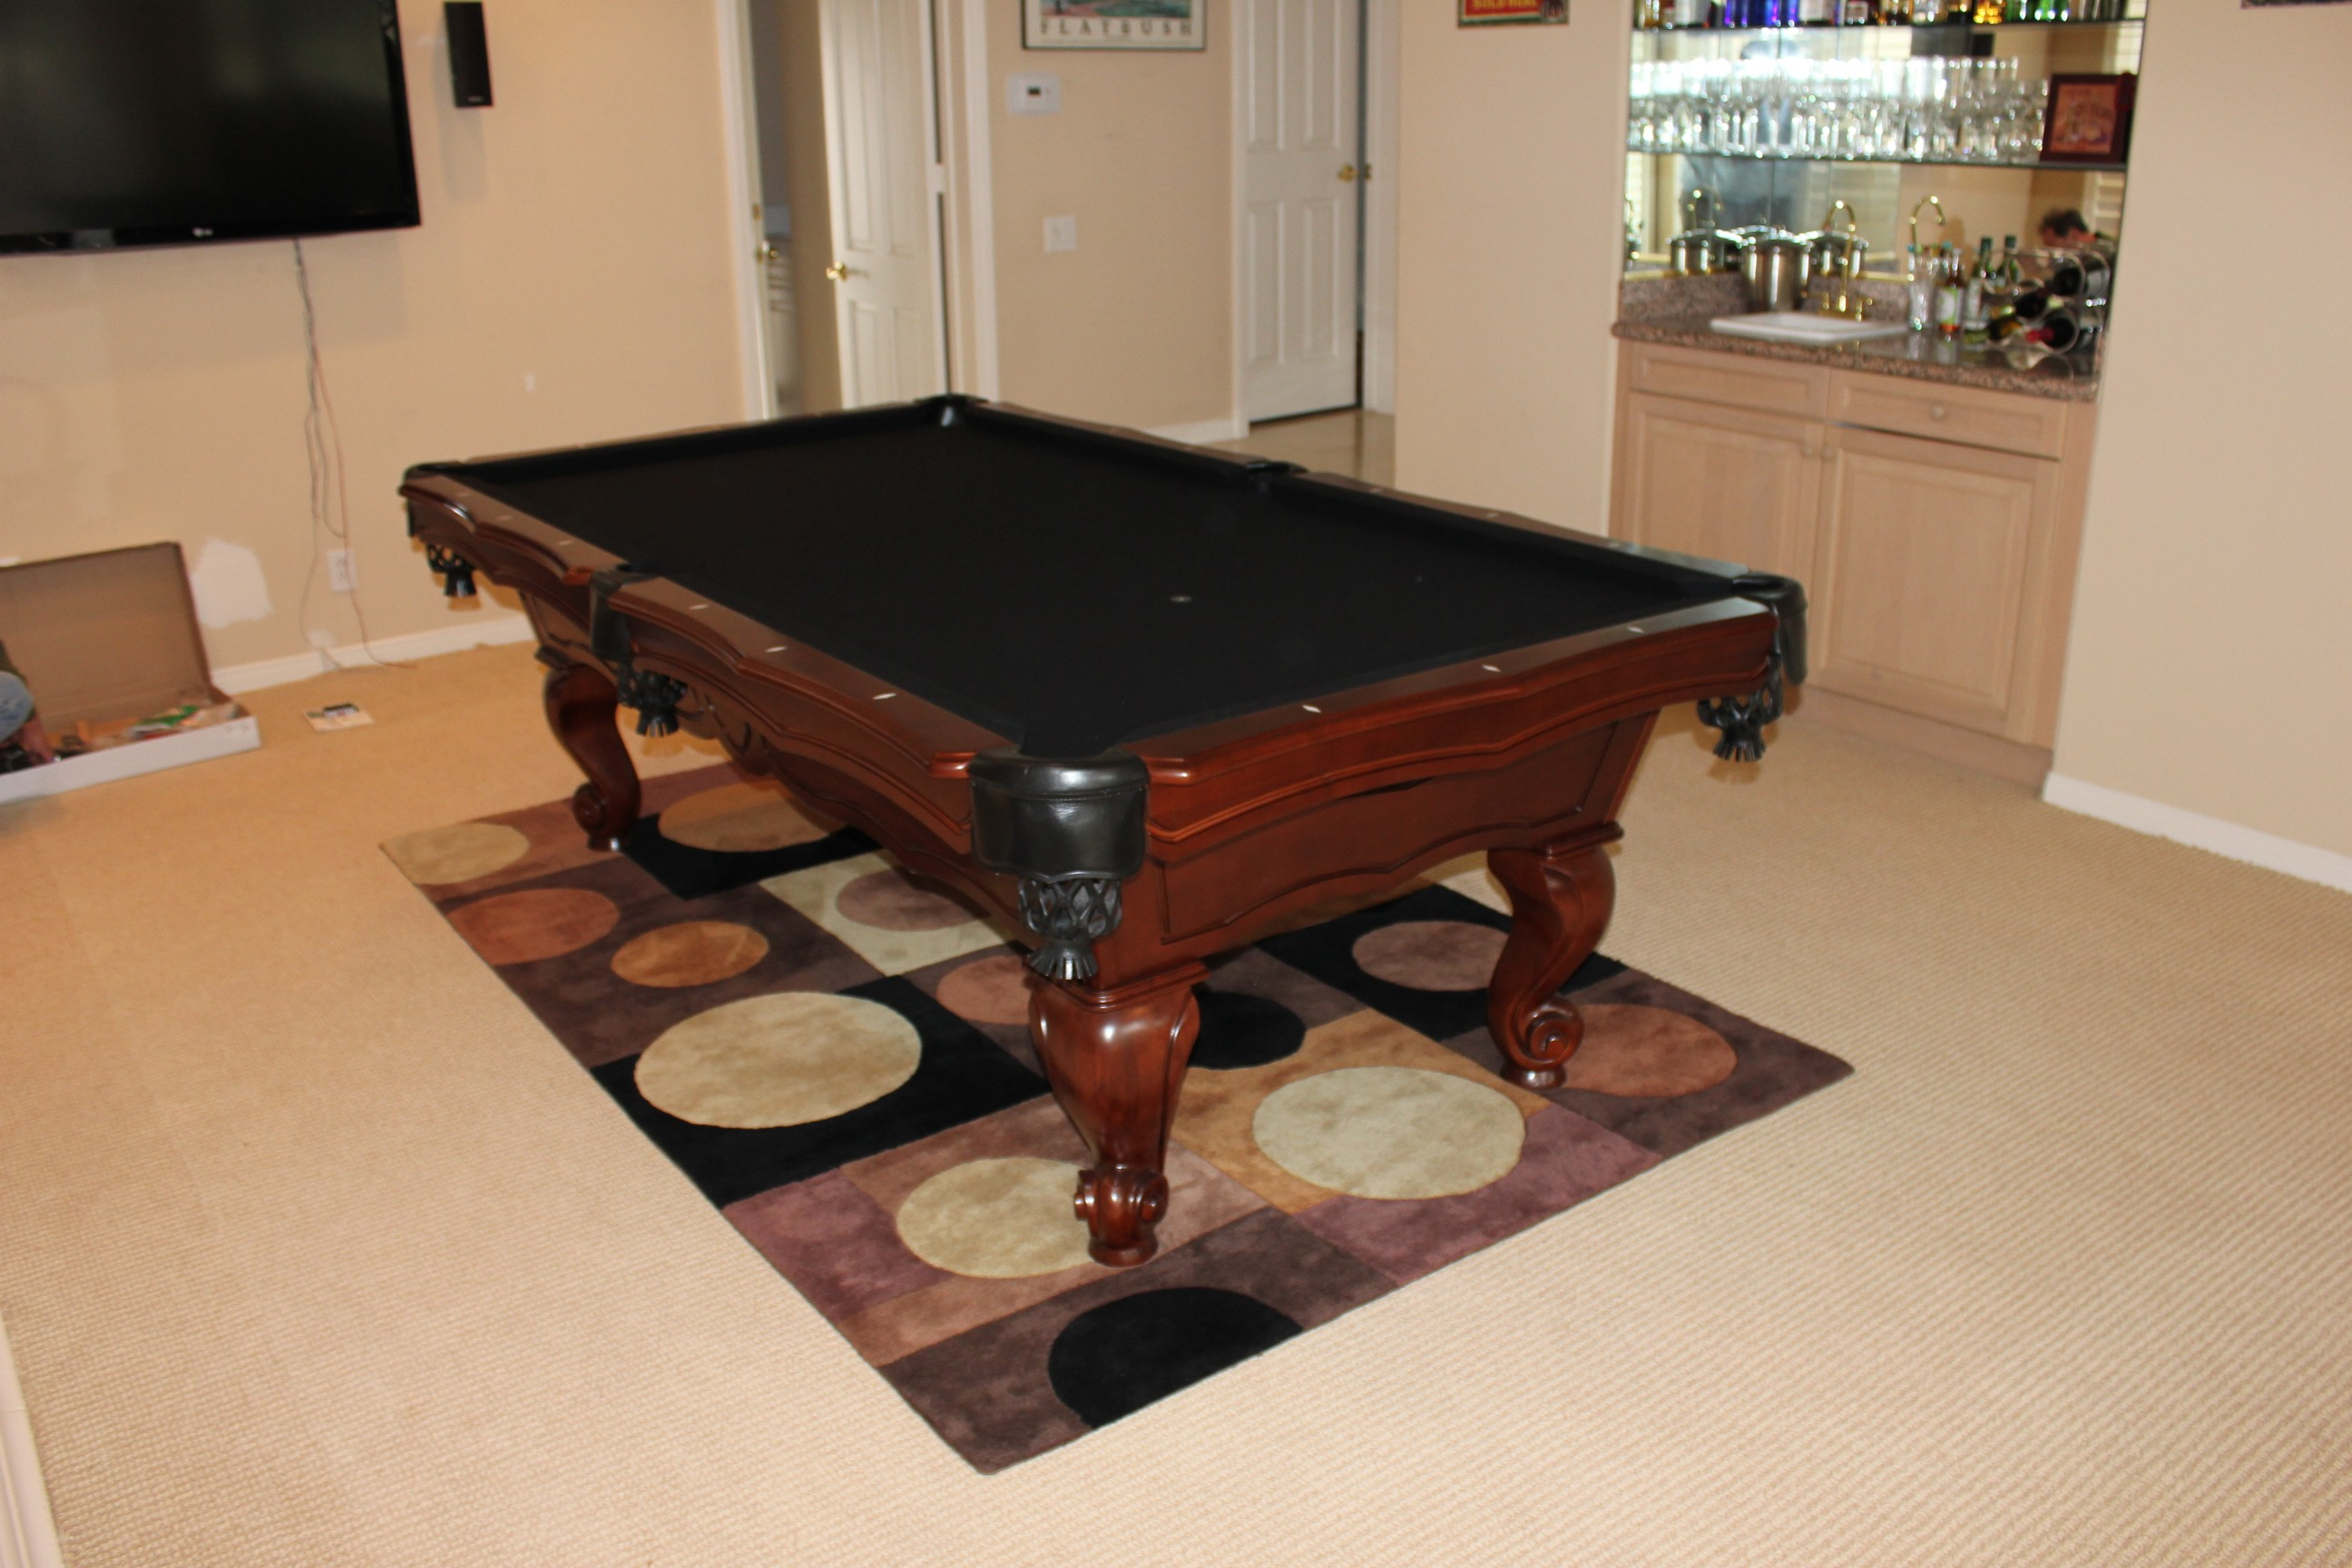 Buying A Good Quality Import Pool Table Can Be A Great Way To Entertain At  Home. The Problem Is Knowing The Good Qualities From The Bad.